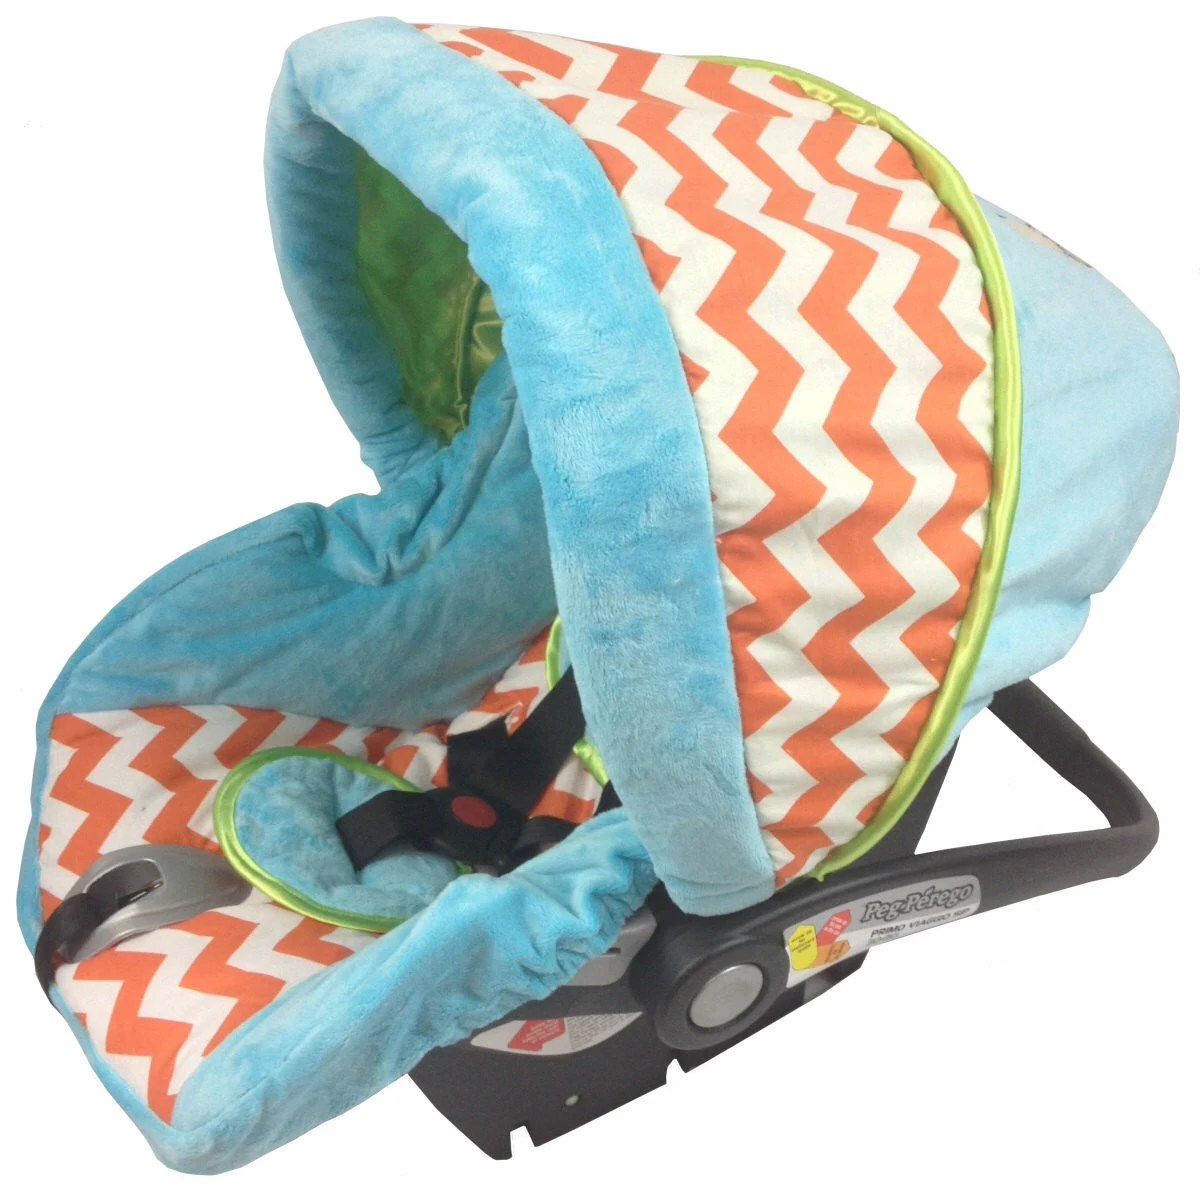 chair covers for baby rental in elizabeth nj boy custom car seat cover replacement by